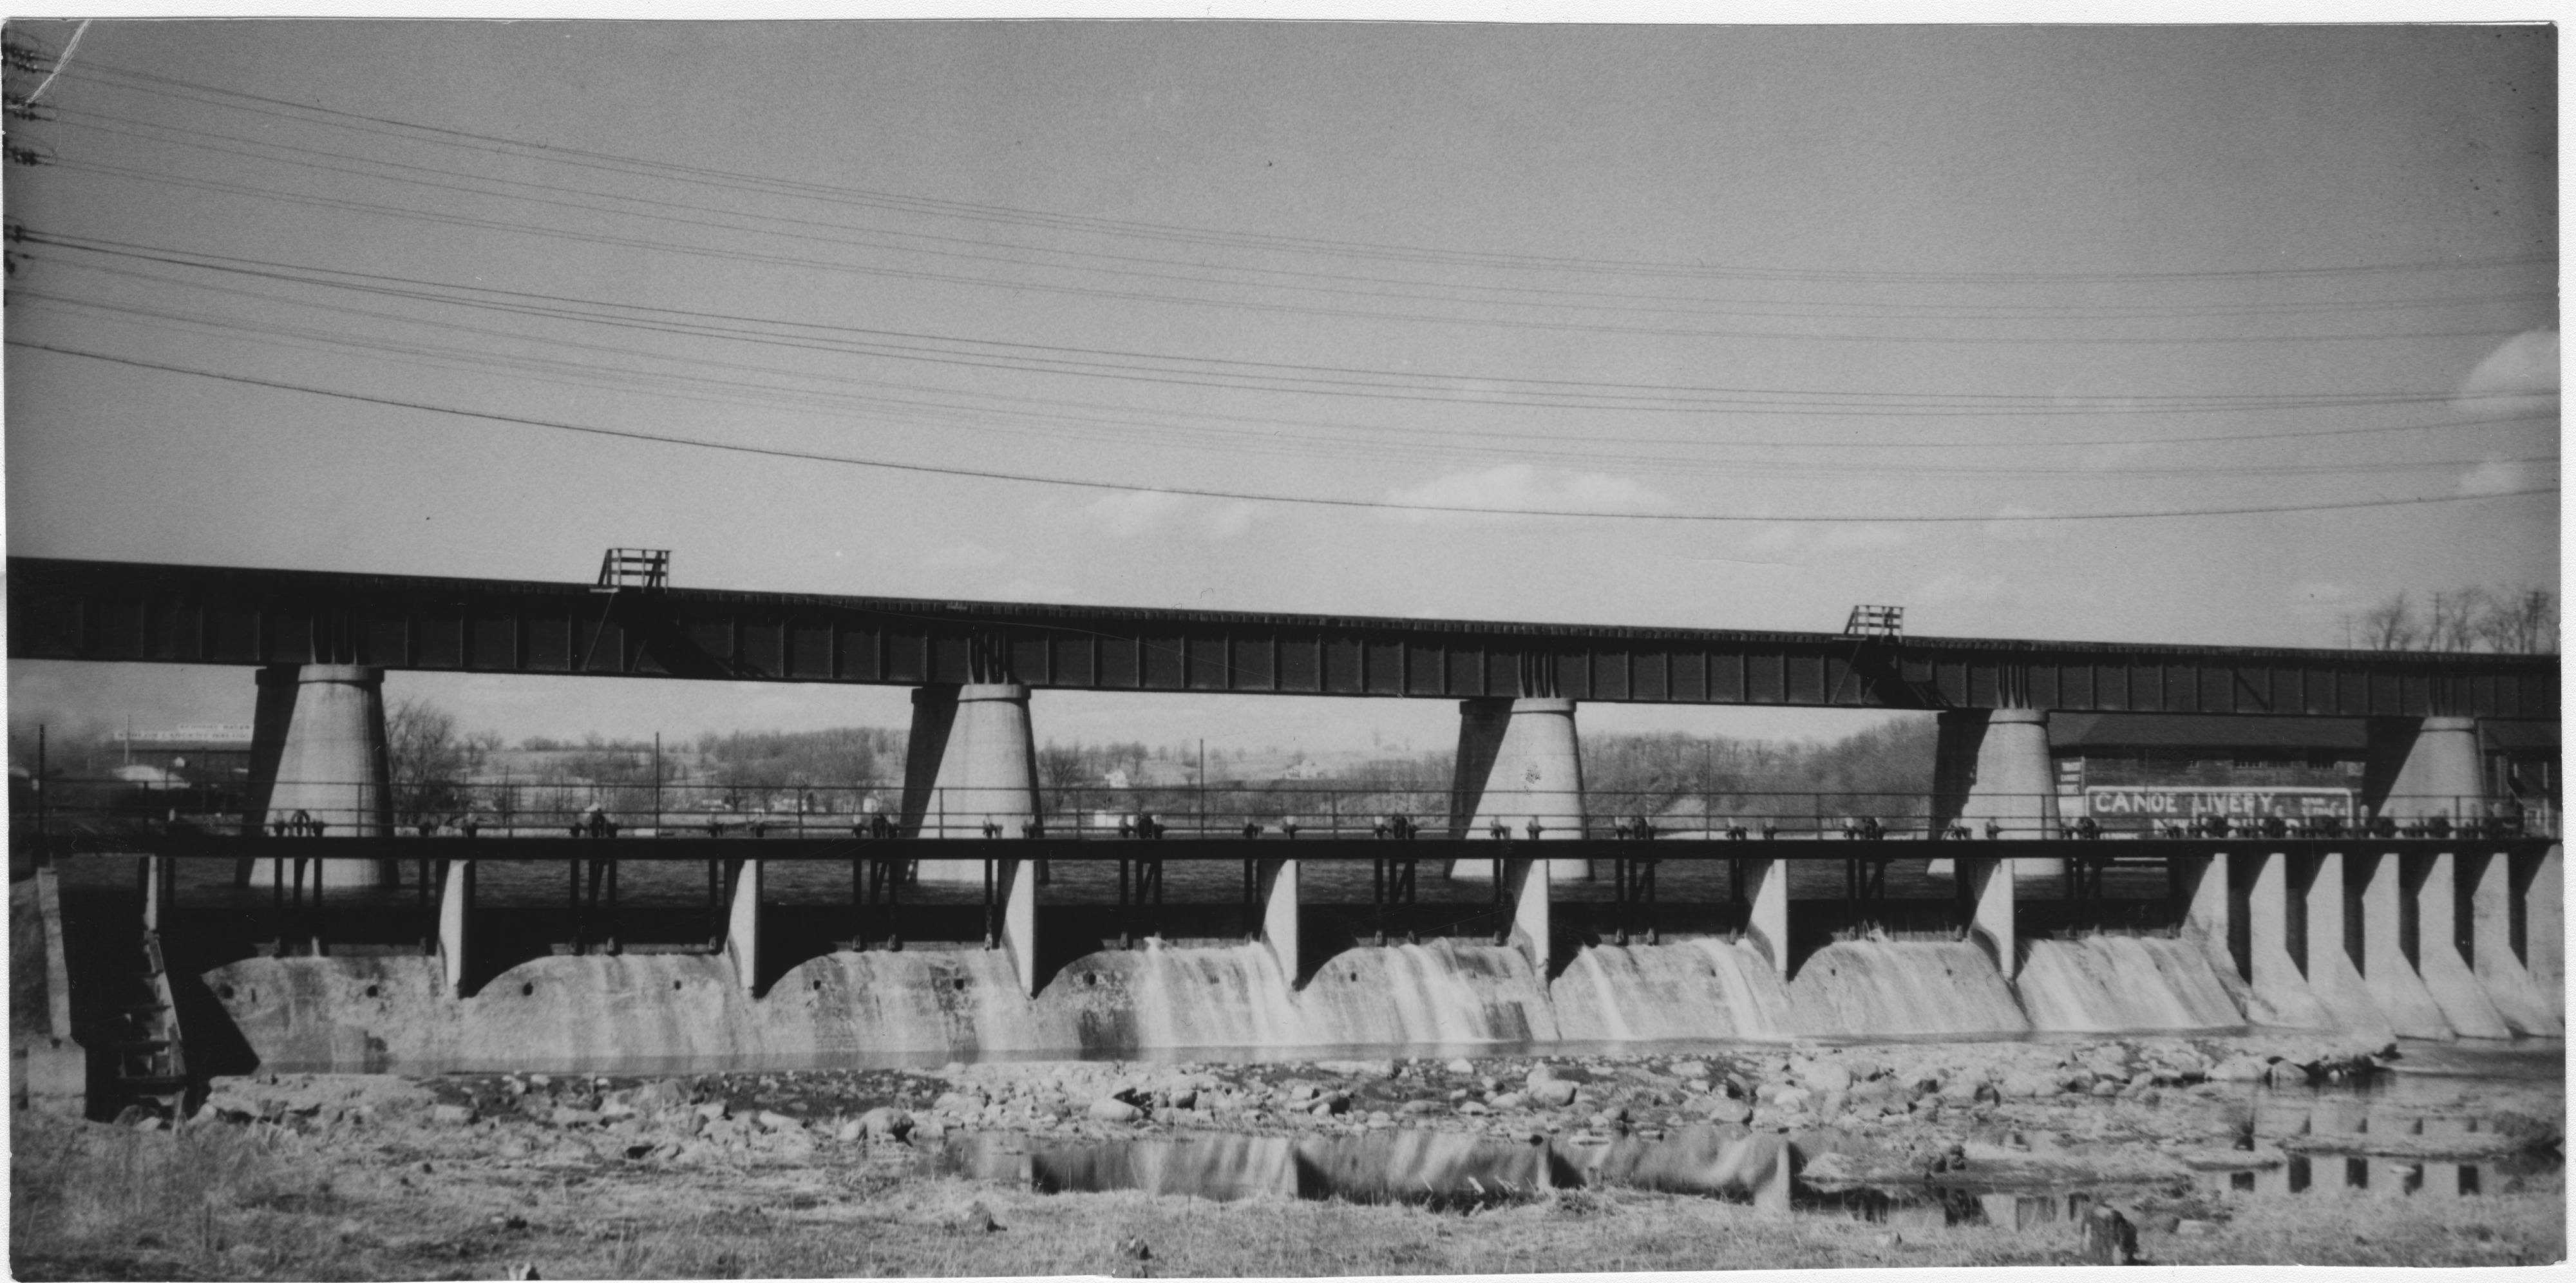 Canal Bridge, Ann Arbor Railroad, undated image